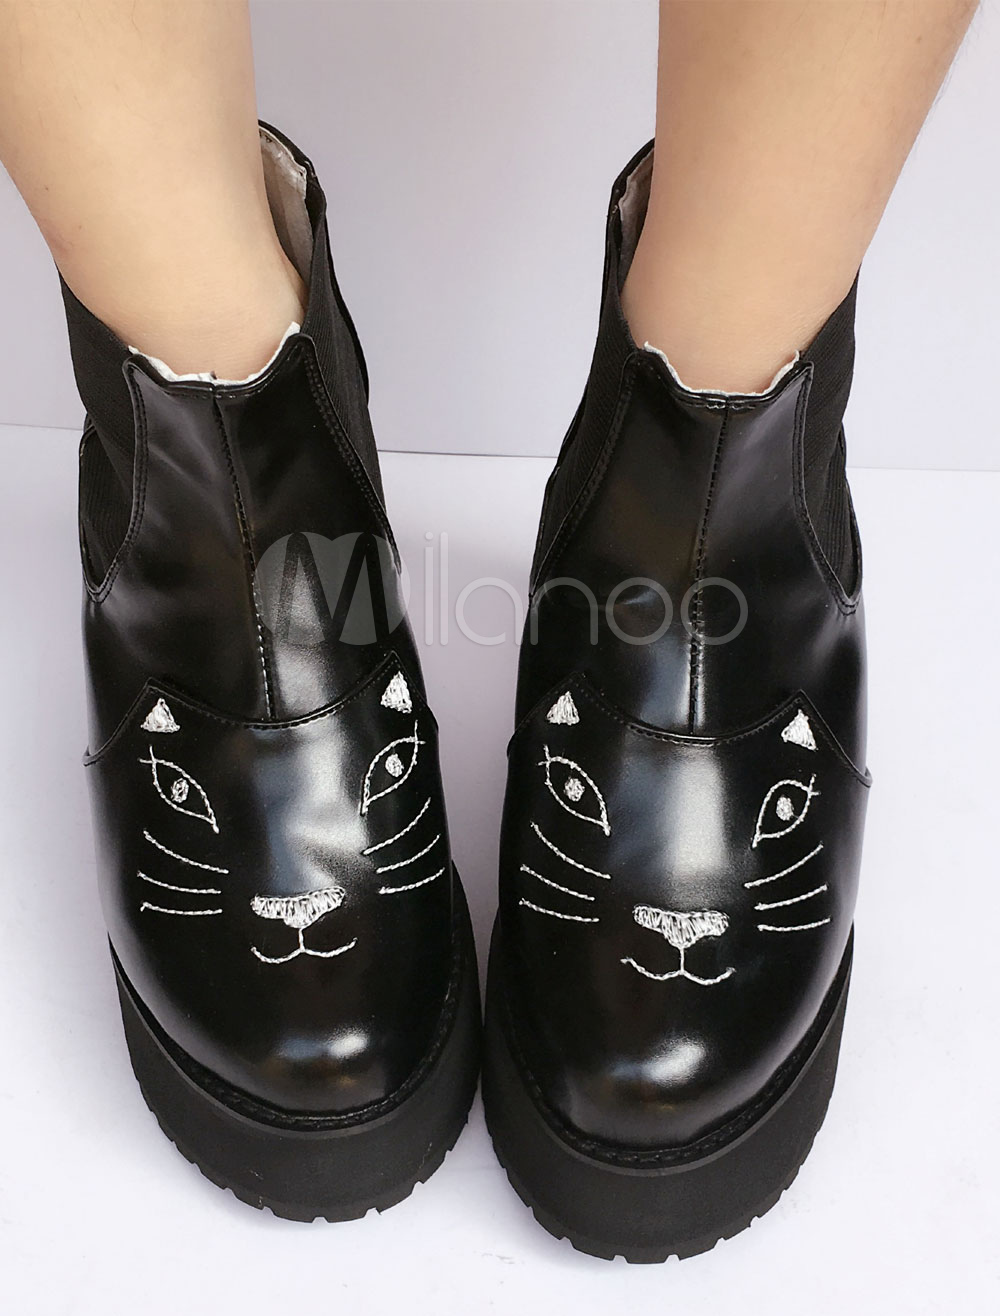 Buy Sweet Lolita Shoes Black Cat Platform Round Toe Lolita Boots for $109.99 in Milanoo store